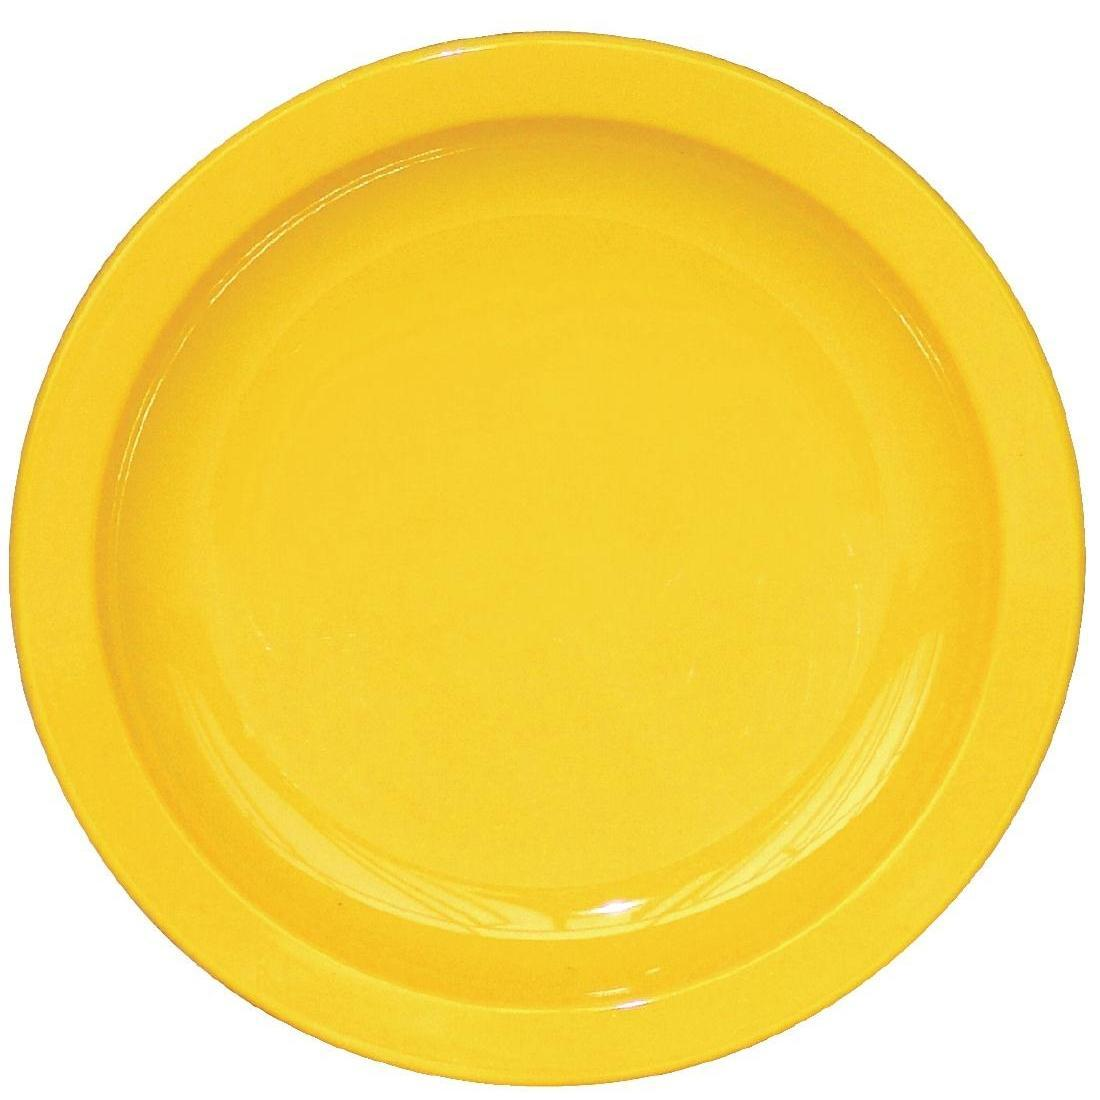 Kristallon Polycarbonate Plates Yellow 172mm - Case 12 - CB763